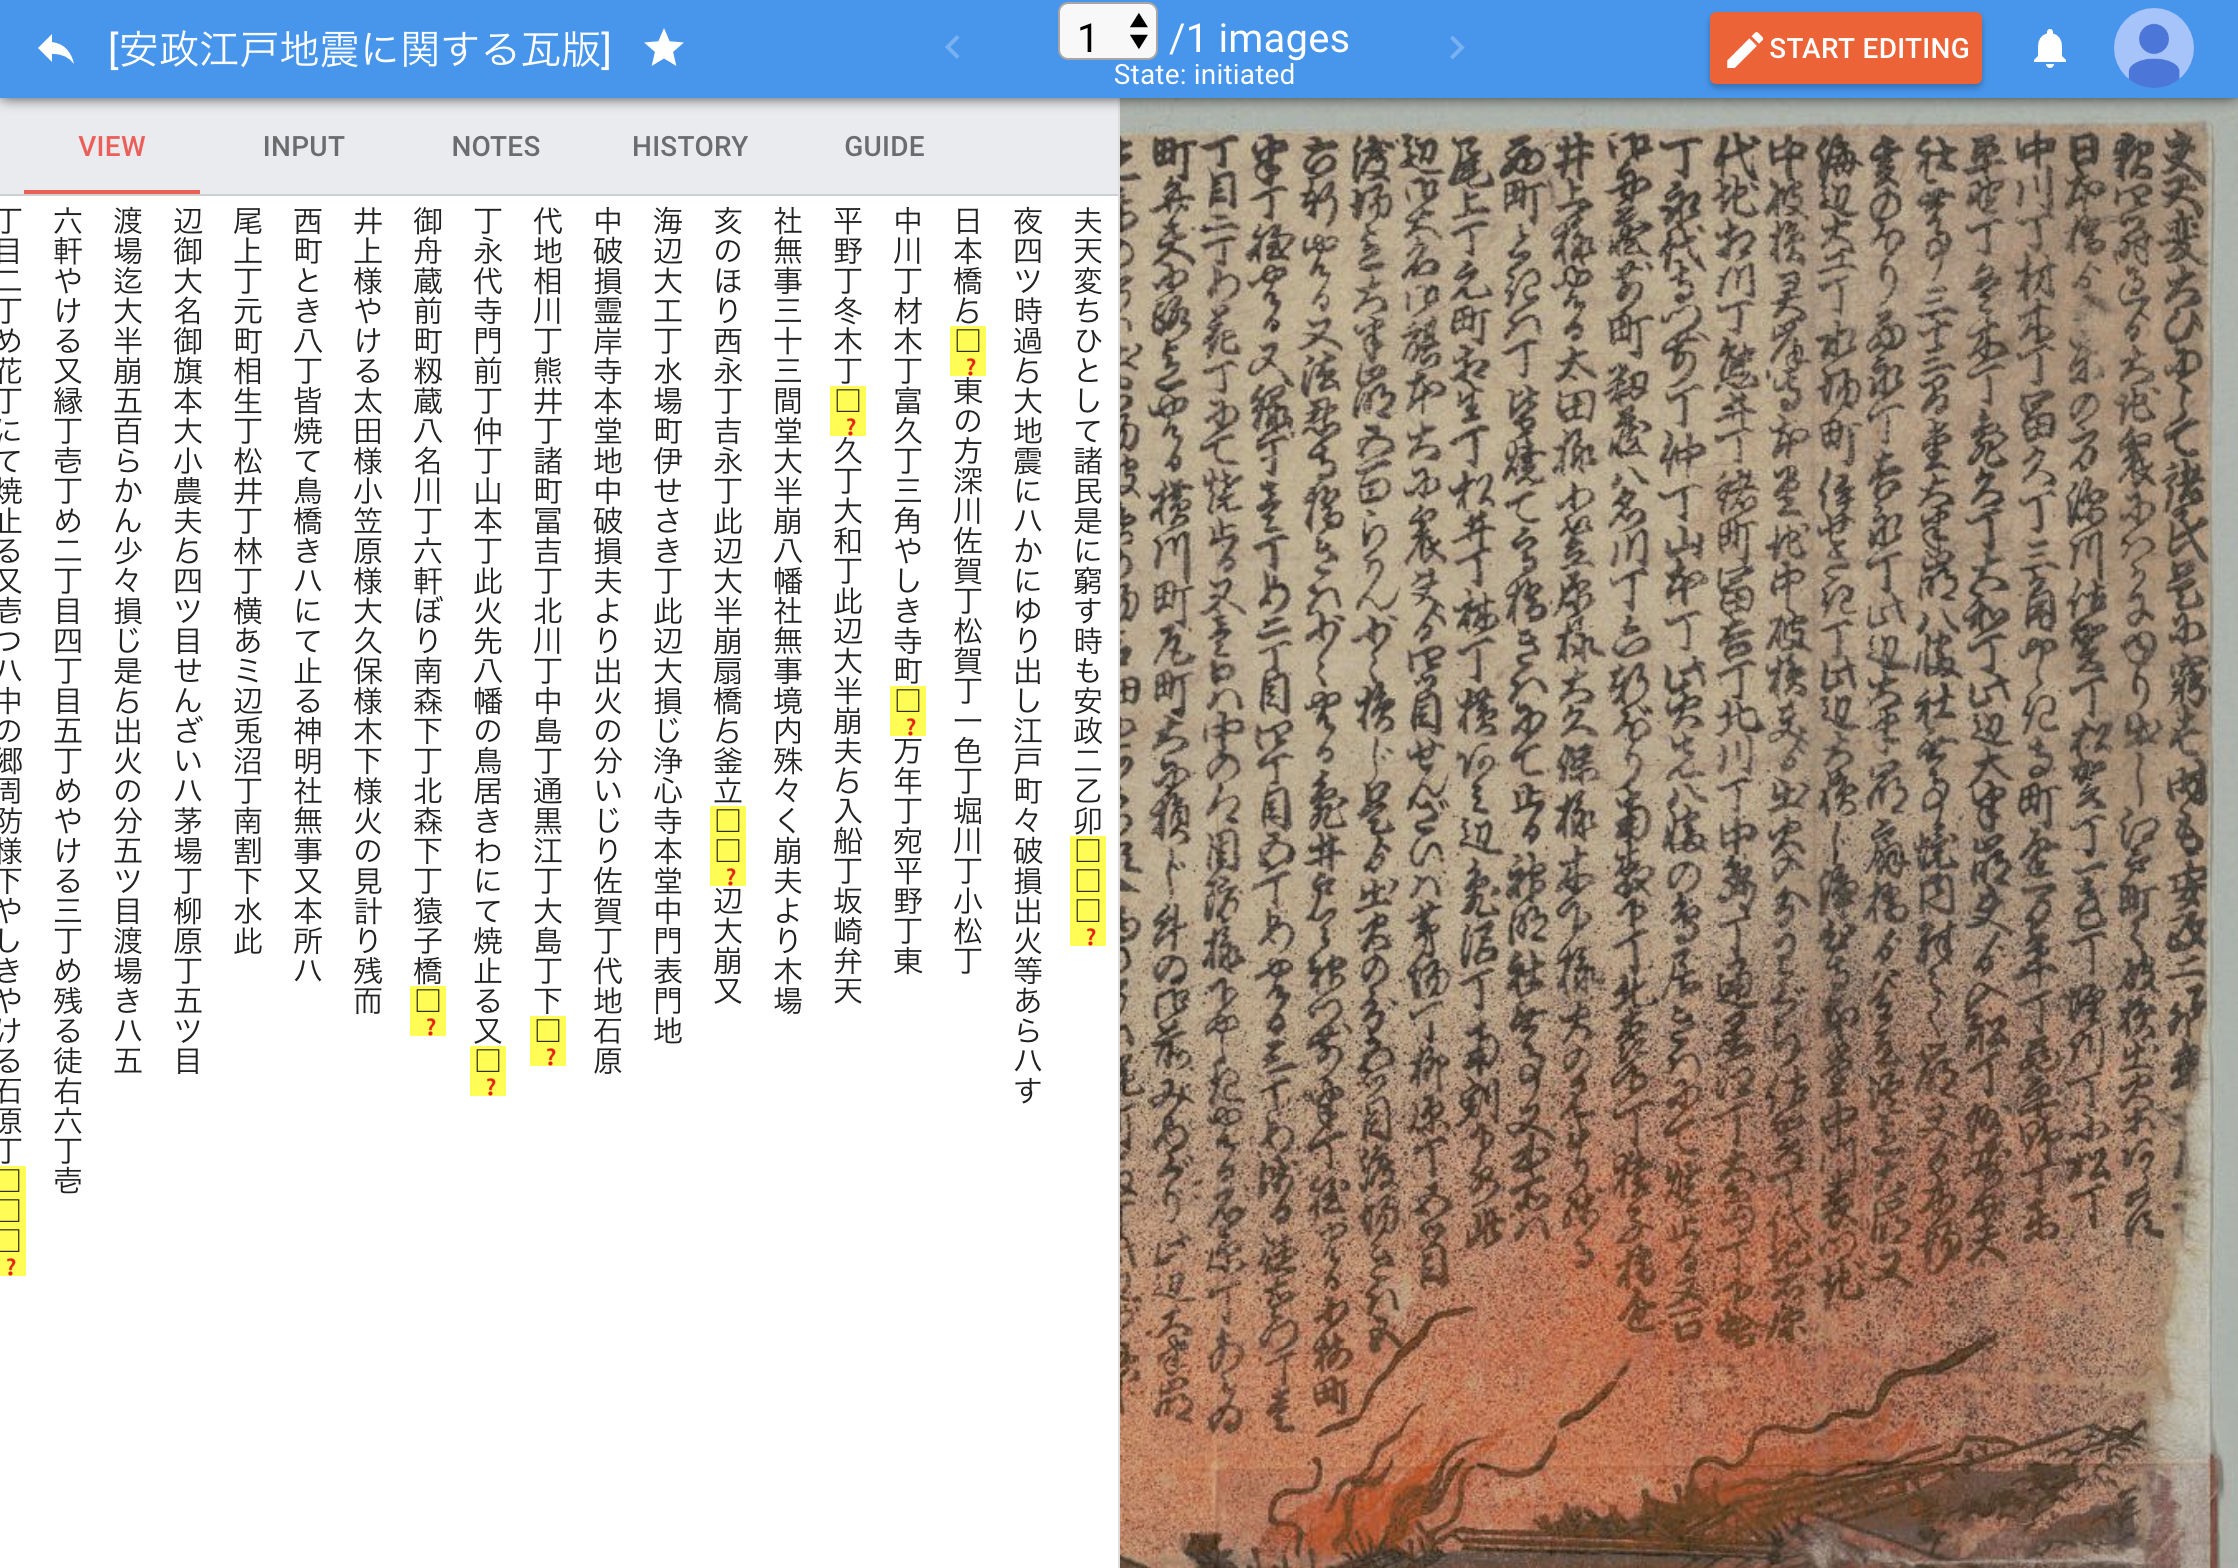 Transcription editor of Minna de Honkoku